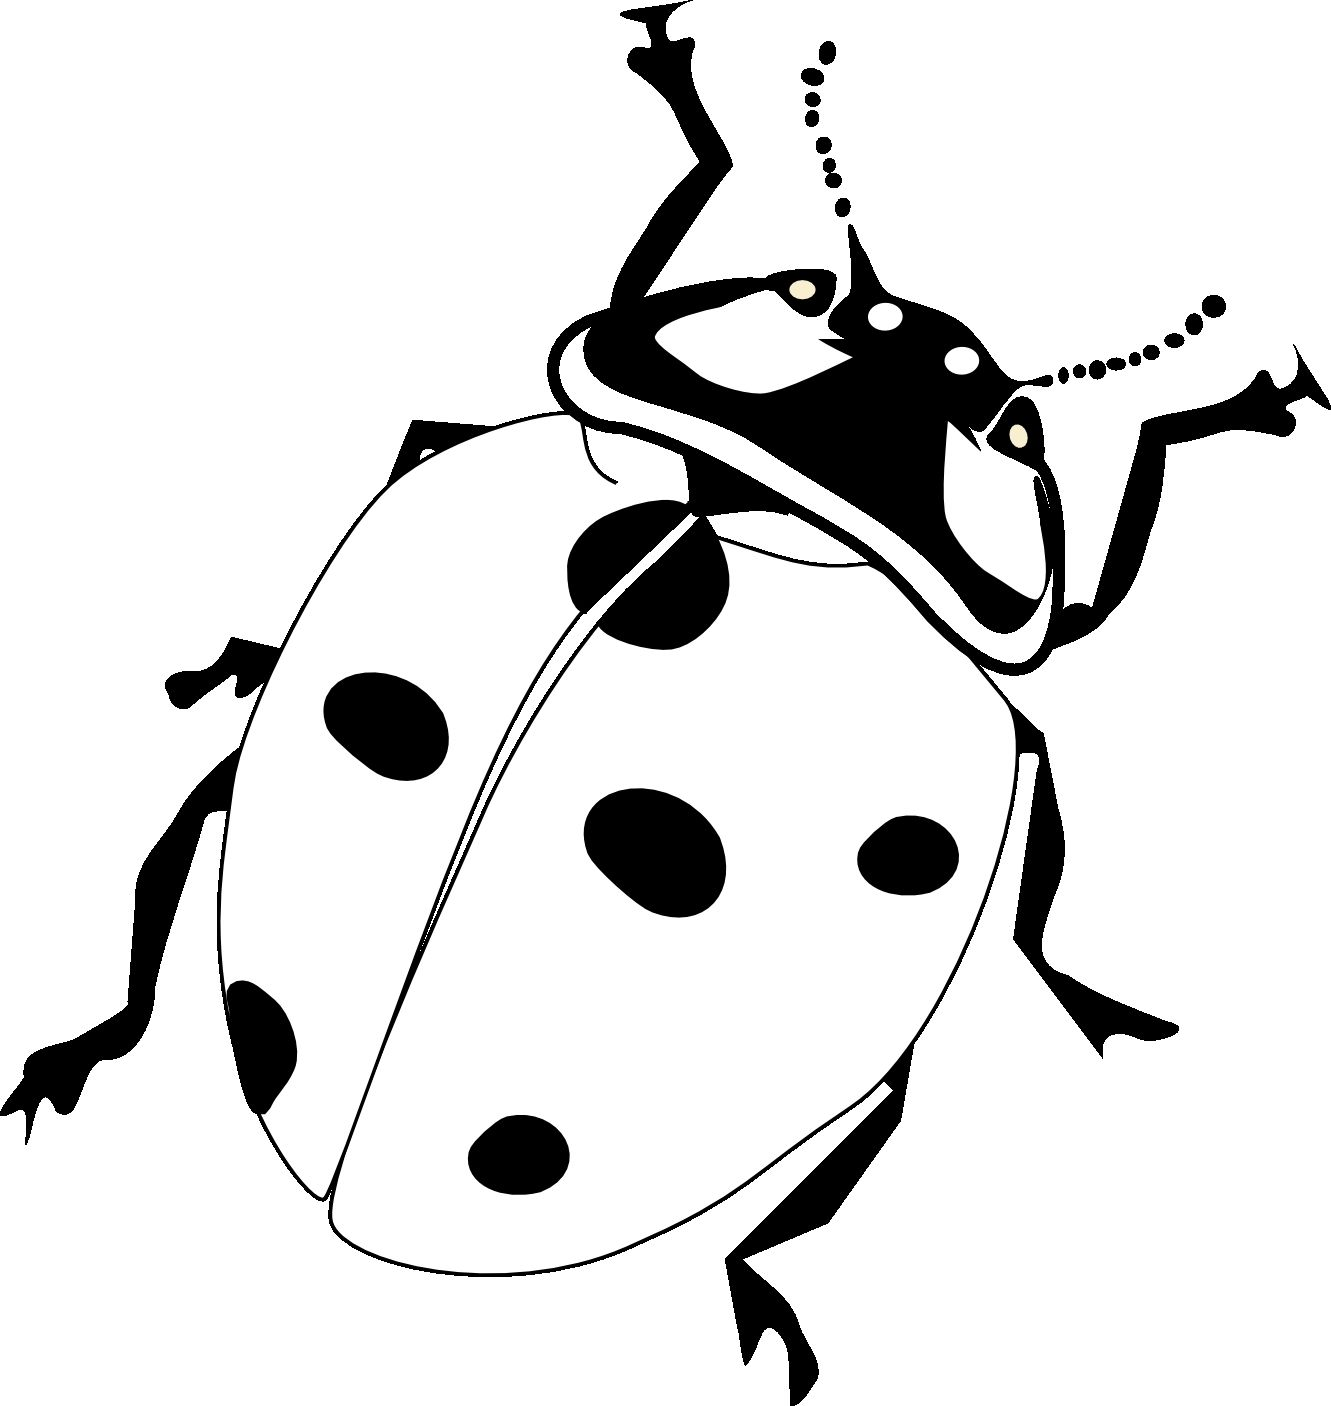 Realistic ladybug coloring pages | images and line drawings in 2018 ...